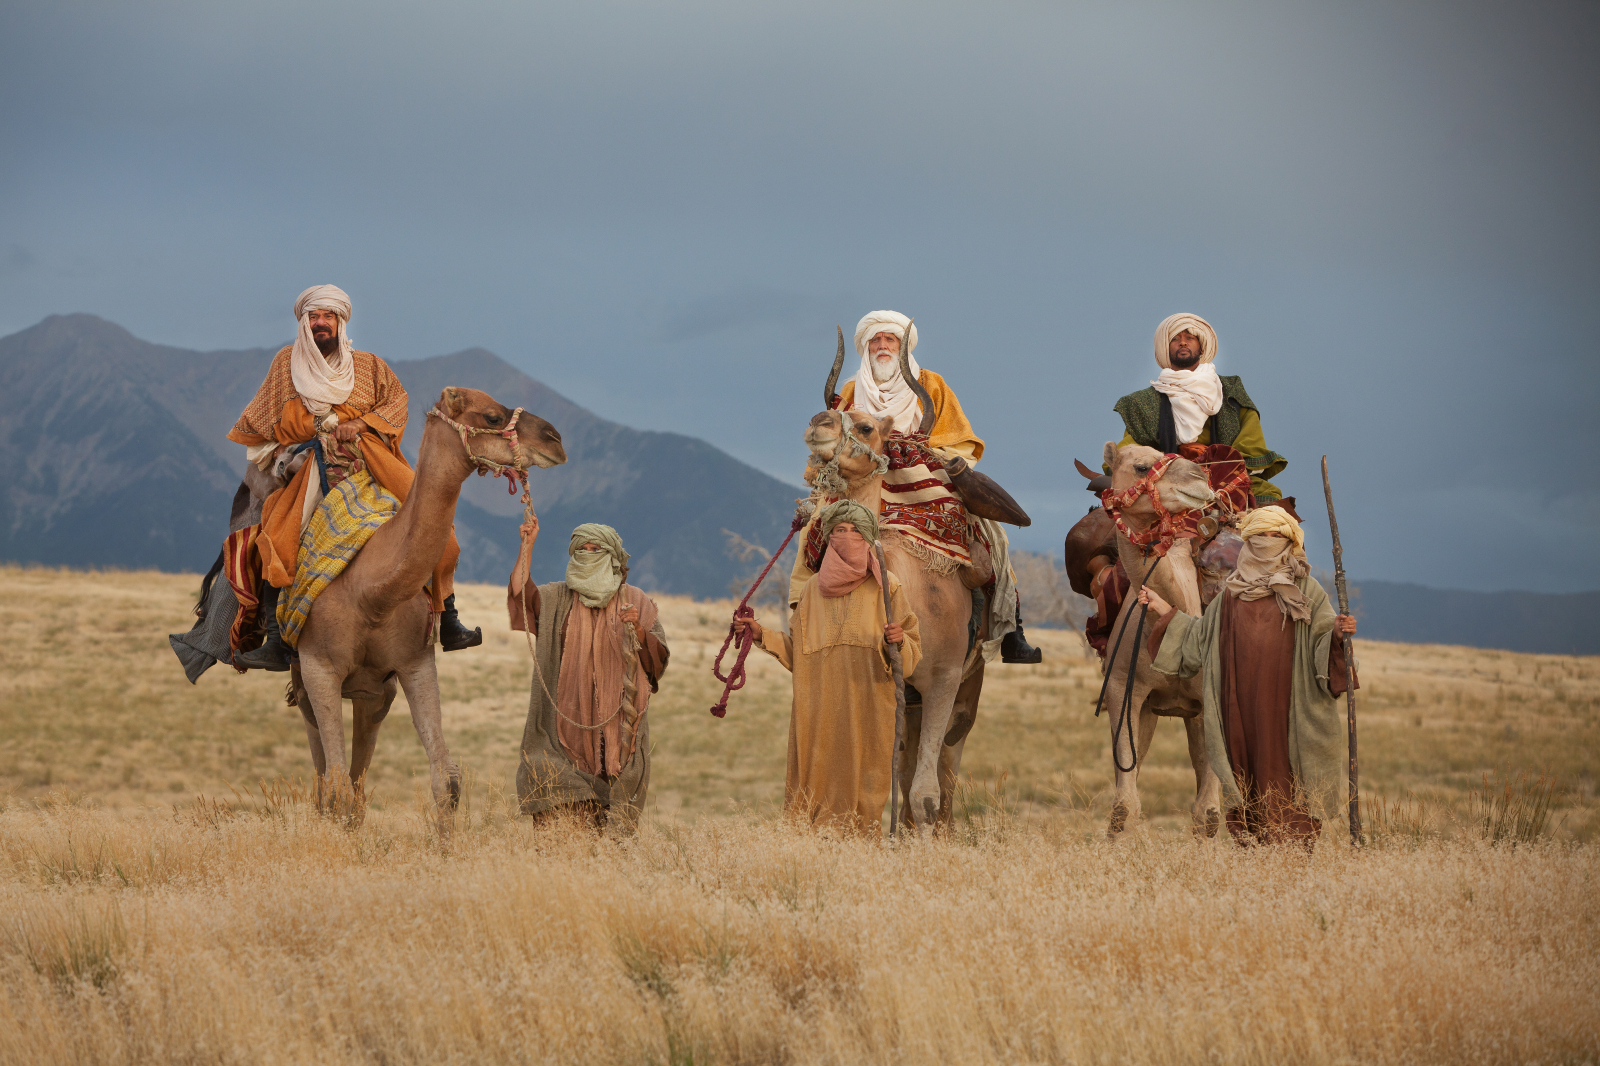 The Wise Men Traveling